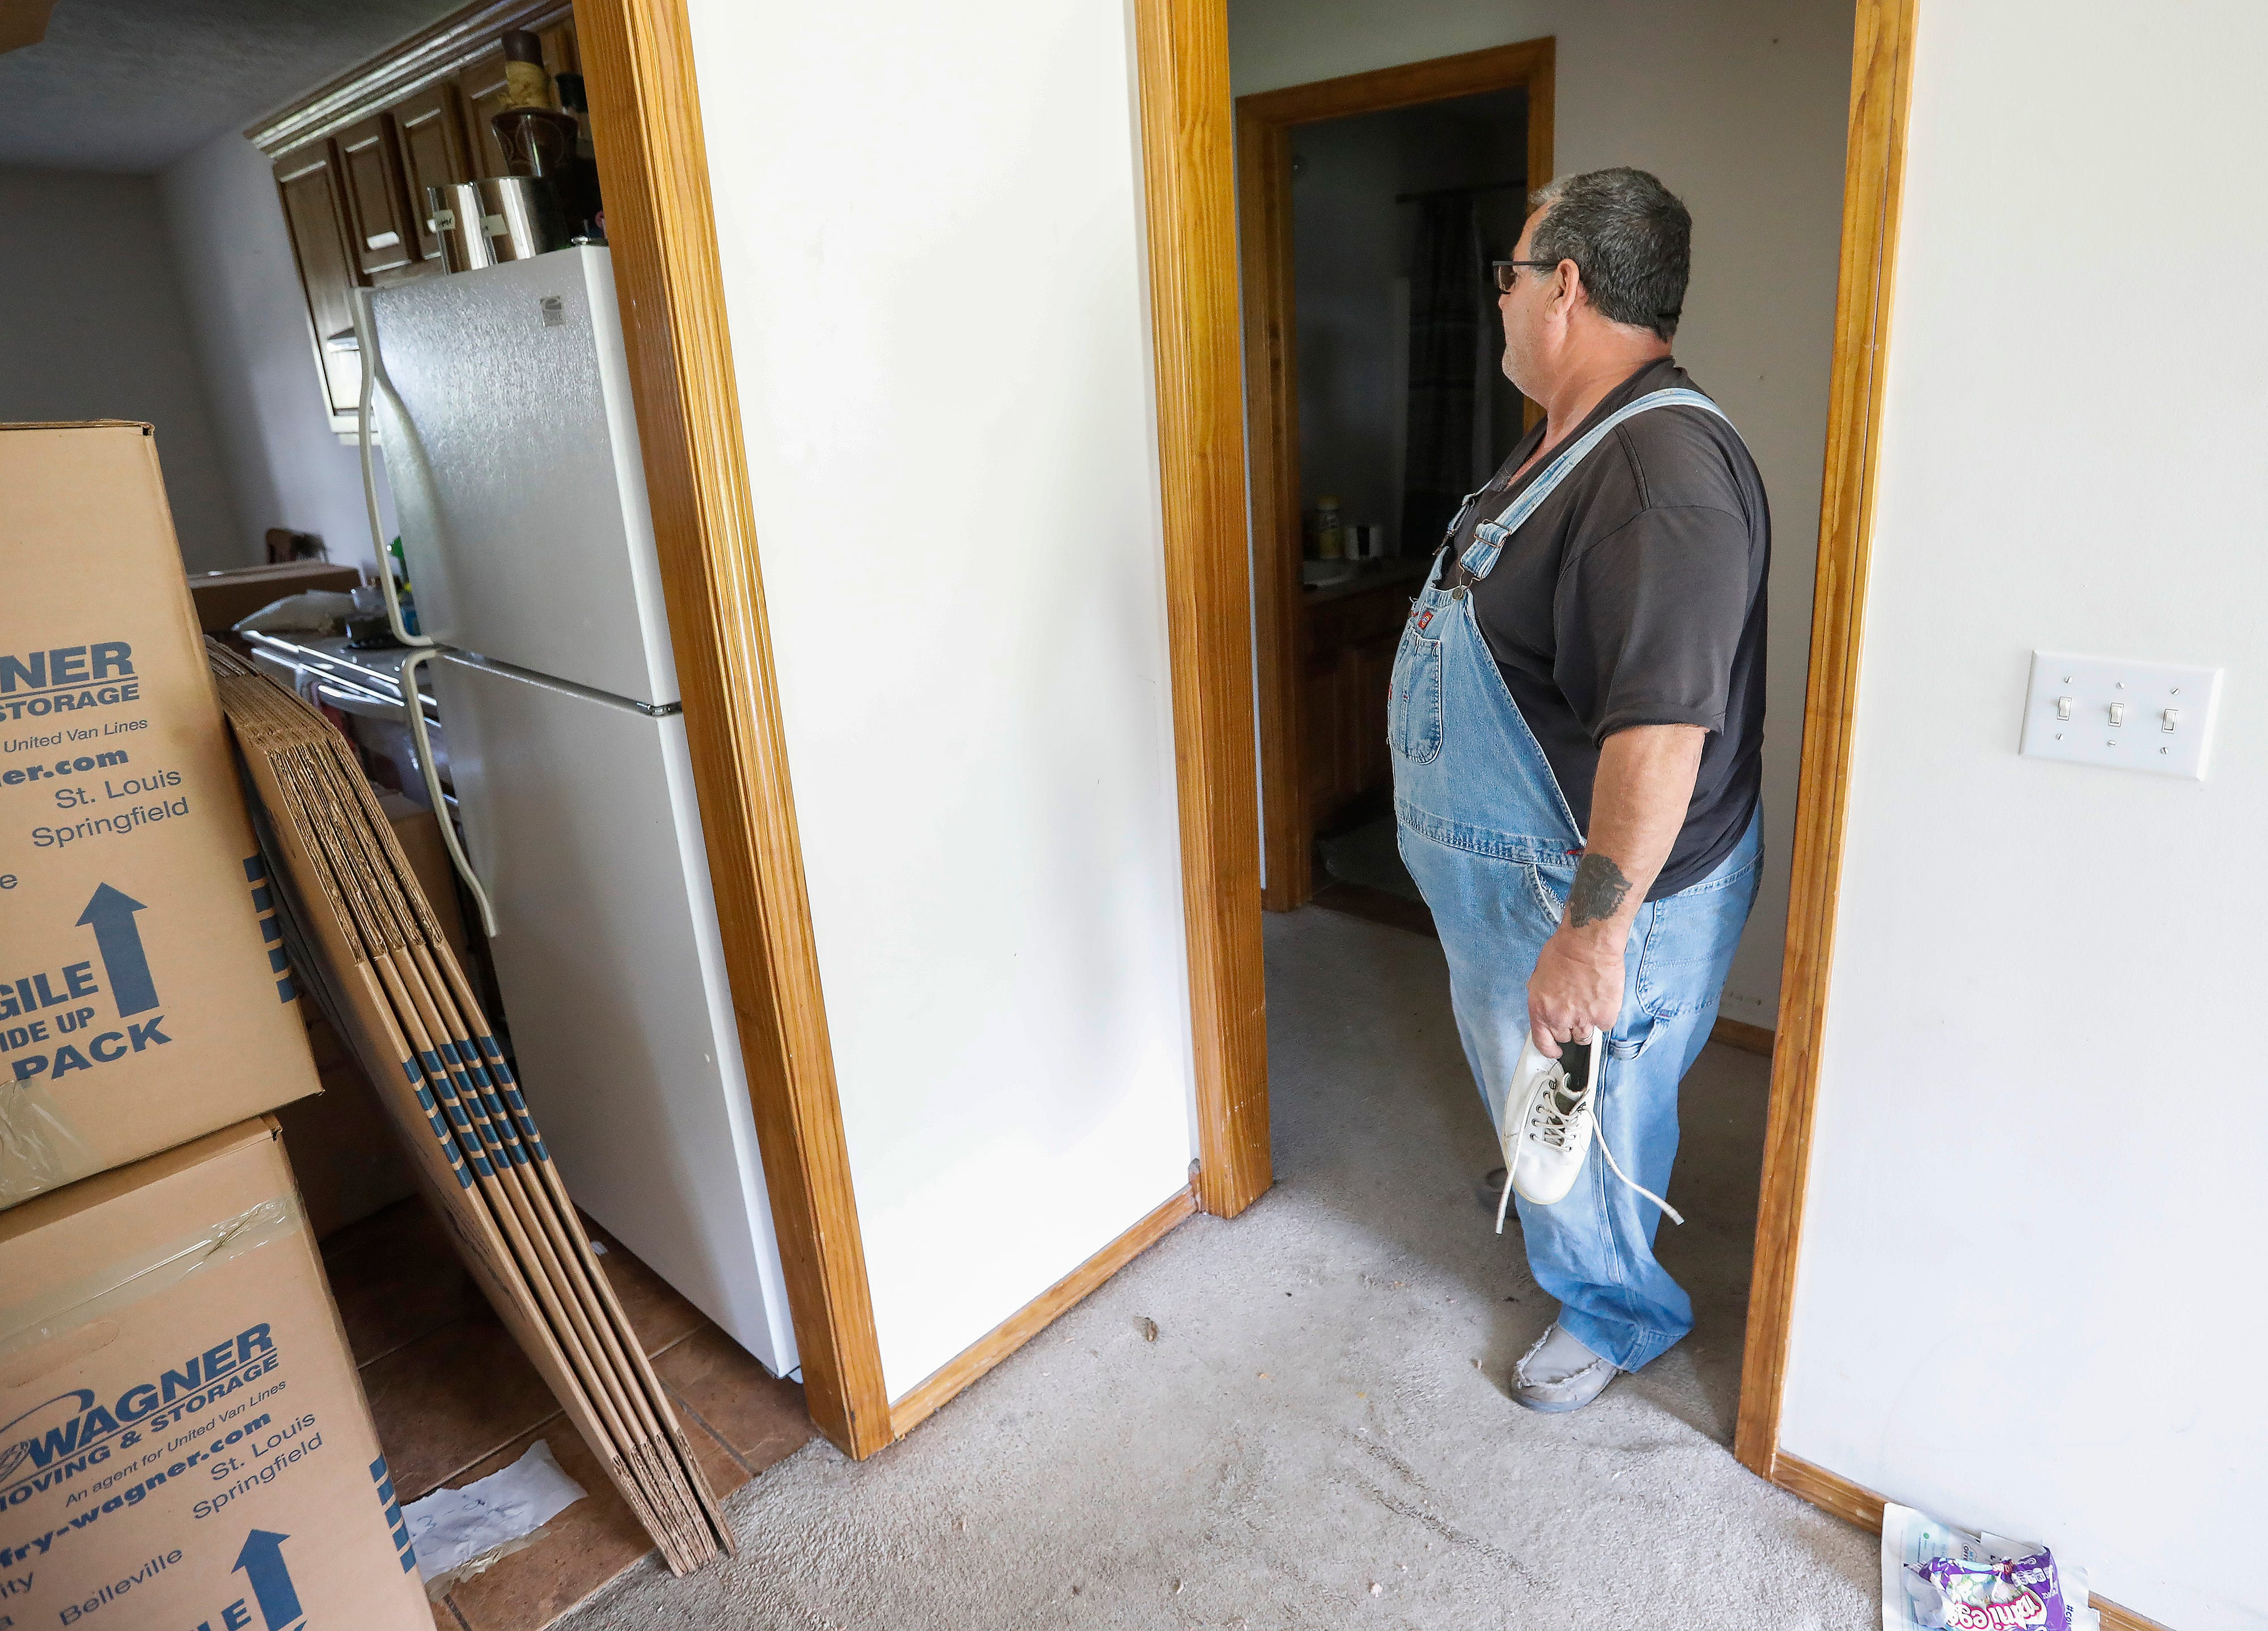 Joe Rossi looks into the bathroom in the hallway that he and his wife crawled into to seek shelter from a tornado that hit their house in Ozark on May 30, 2019.